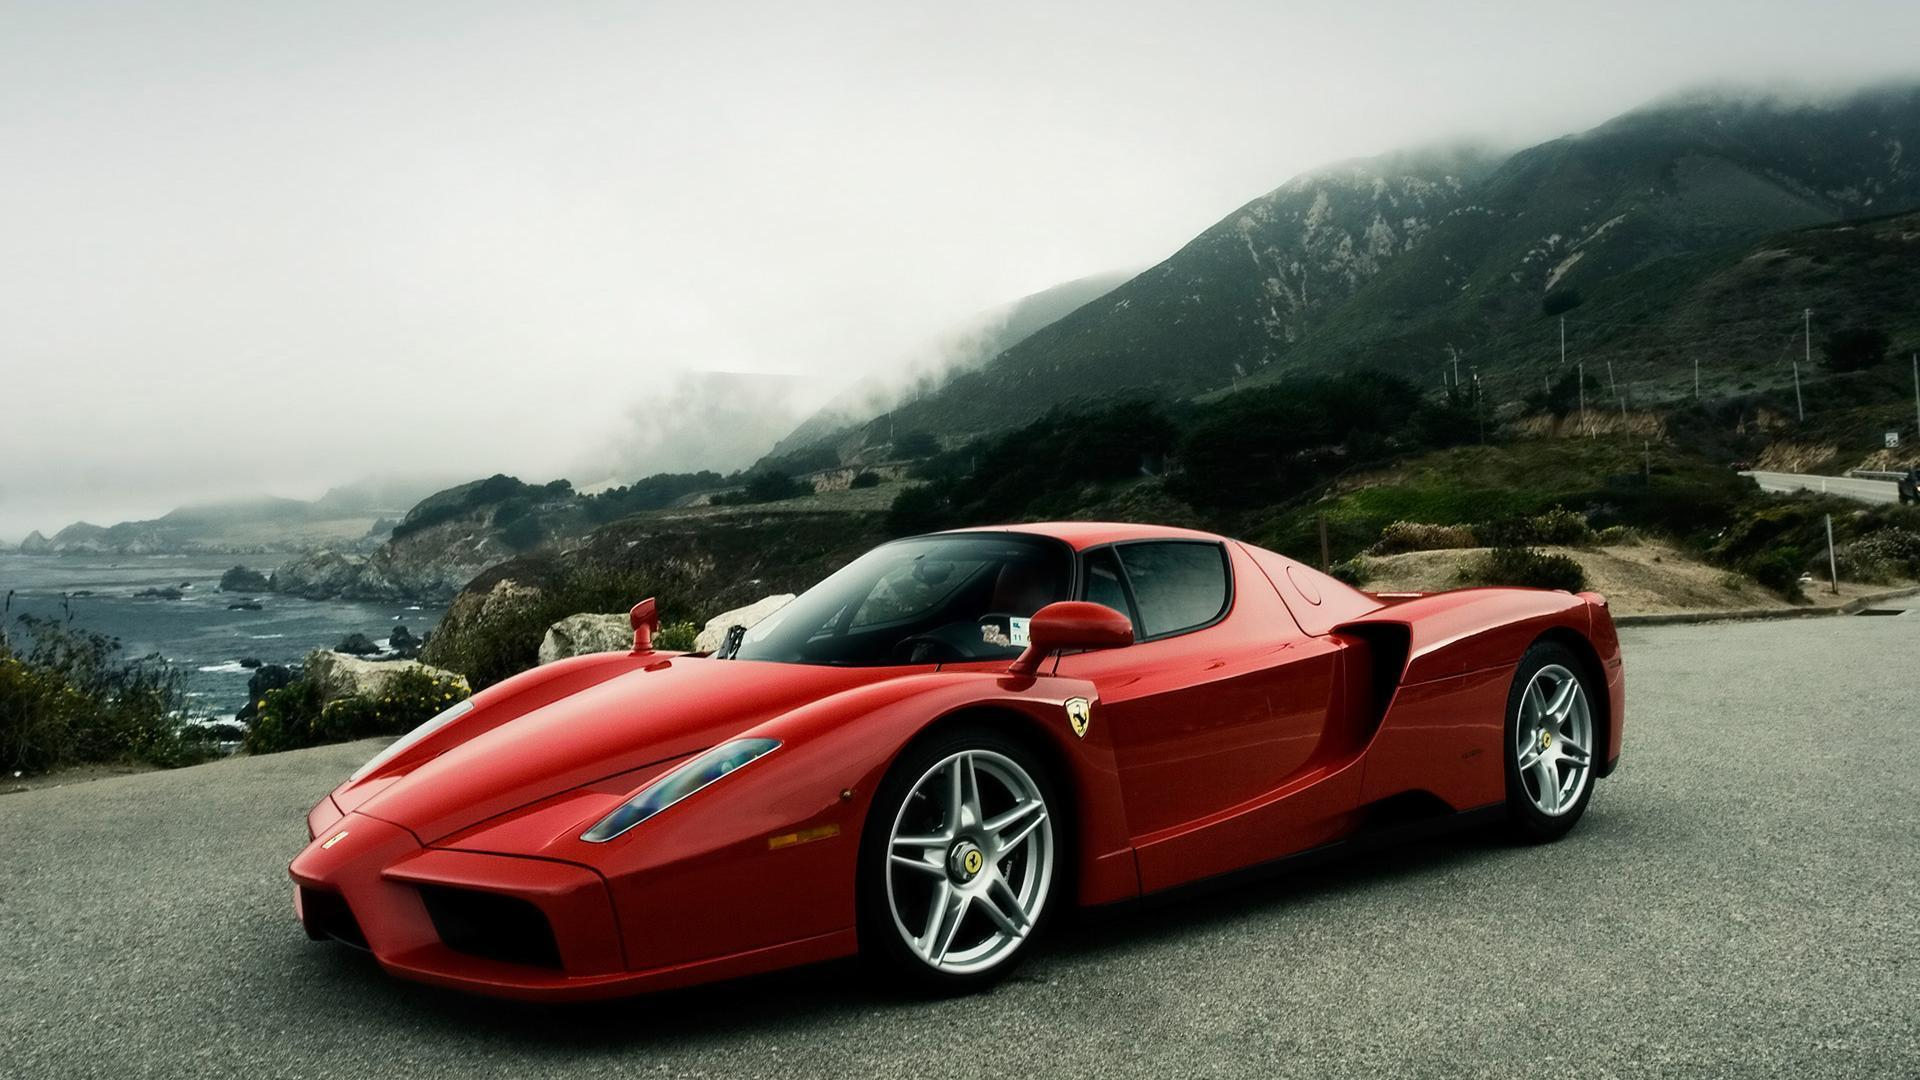 sport cars hd wallpapers - photo #15